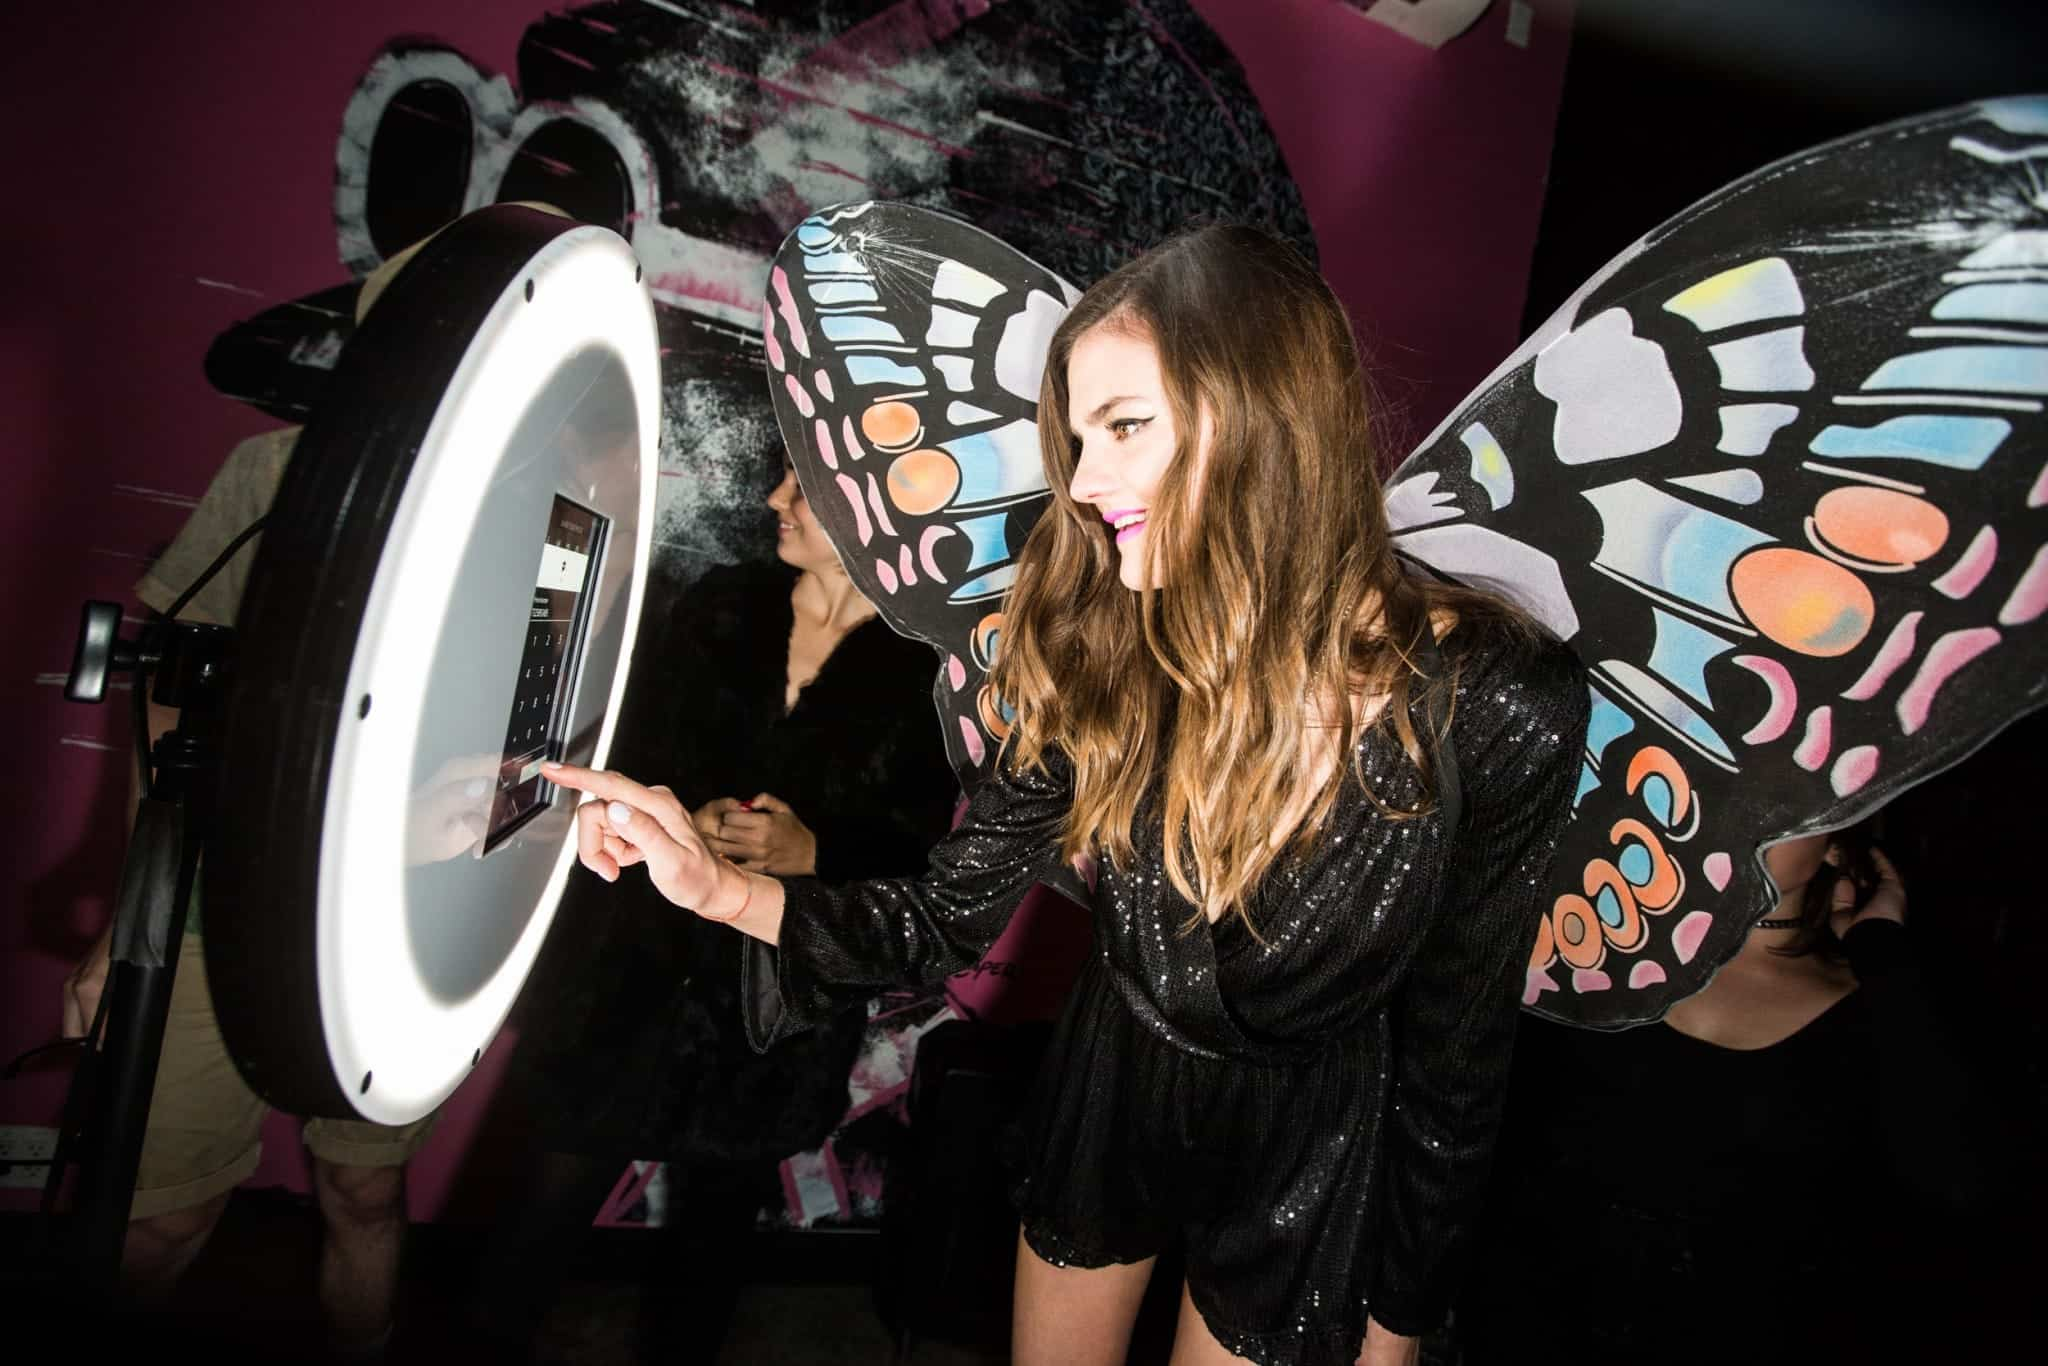 A woman wearing butterfly wings snaps a pic using modern technology.